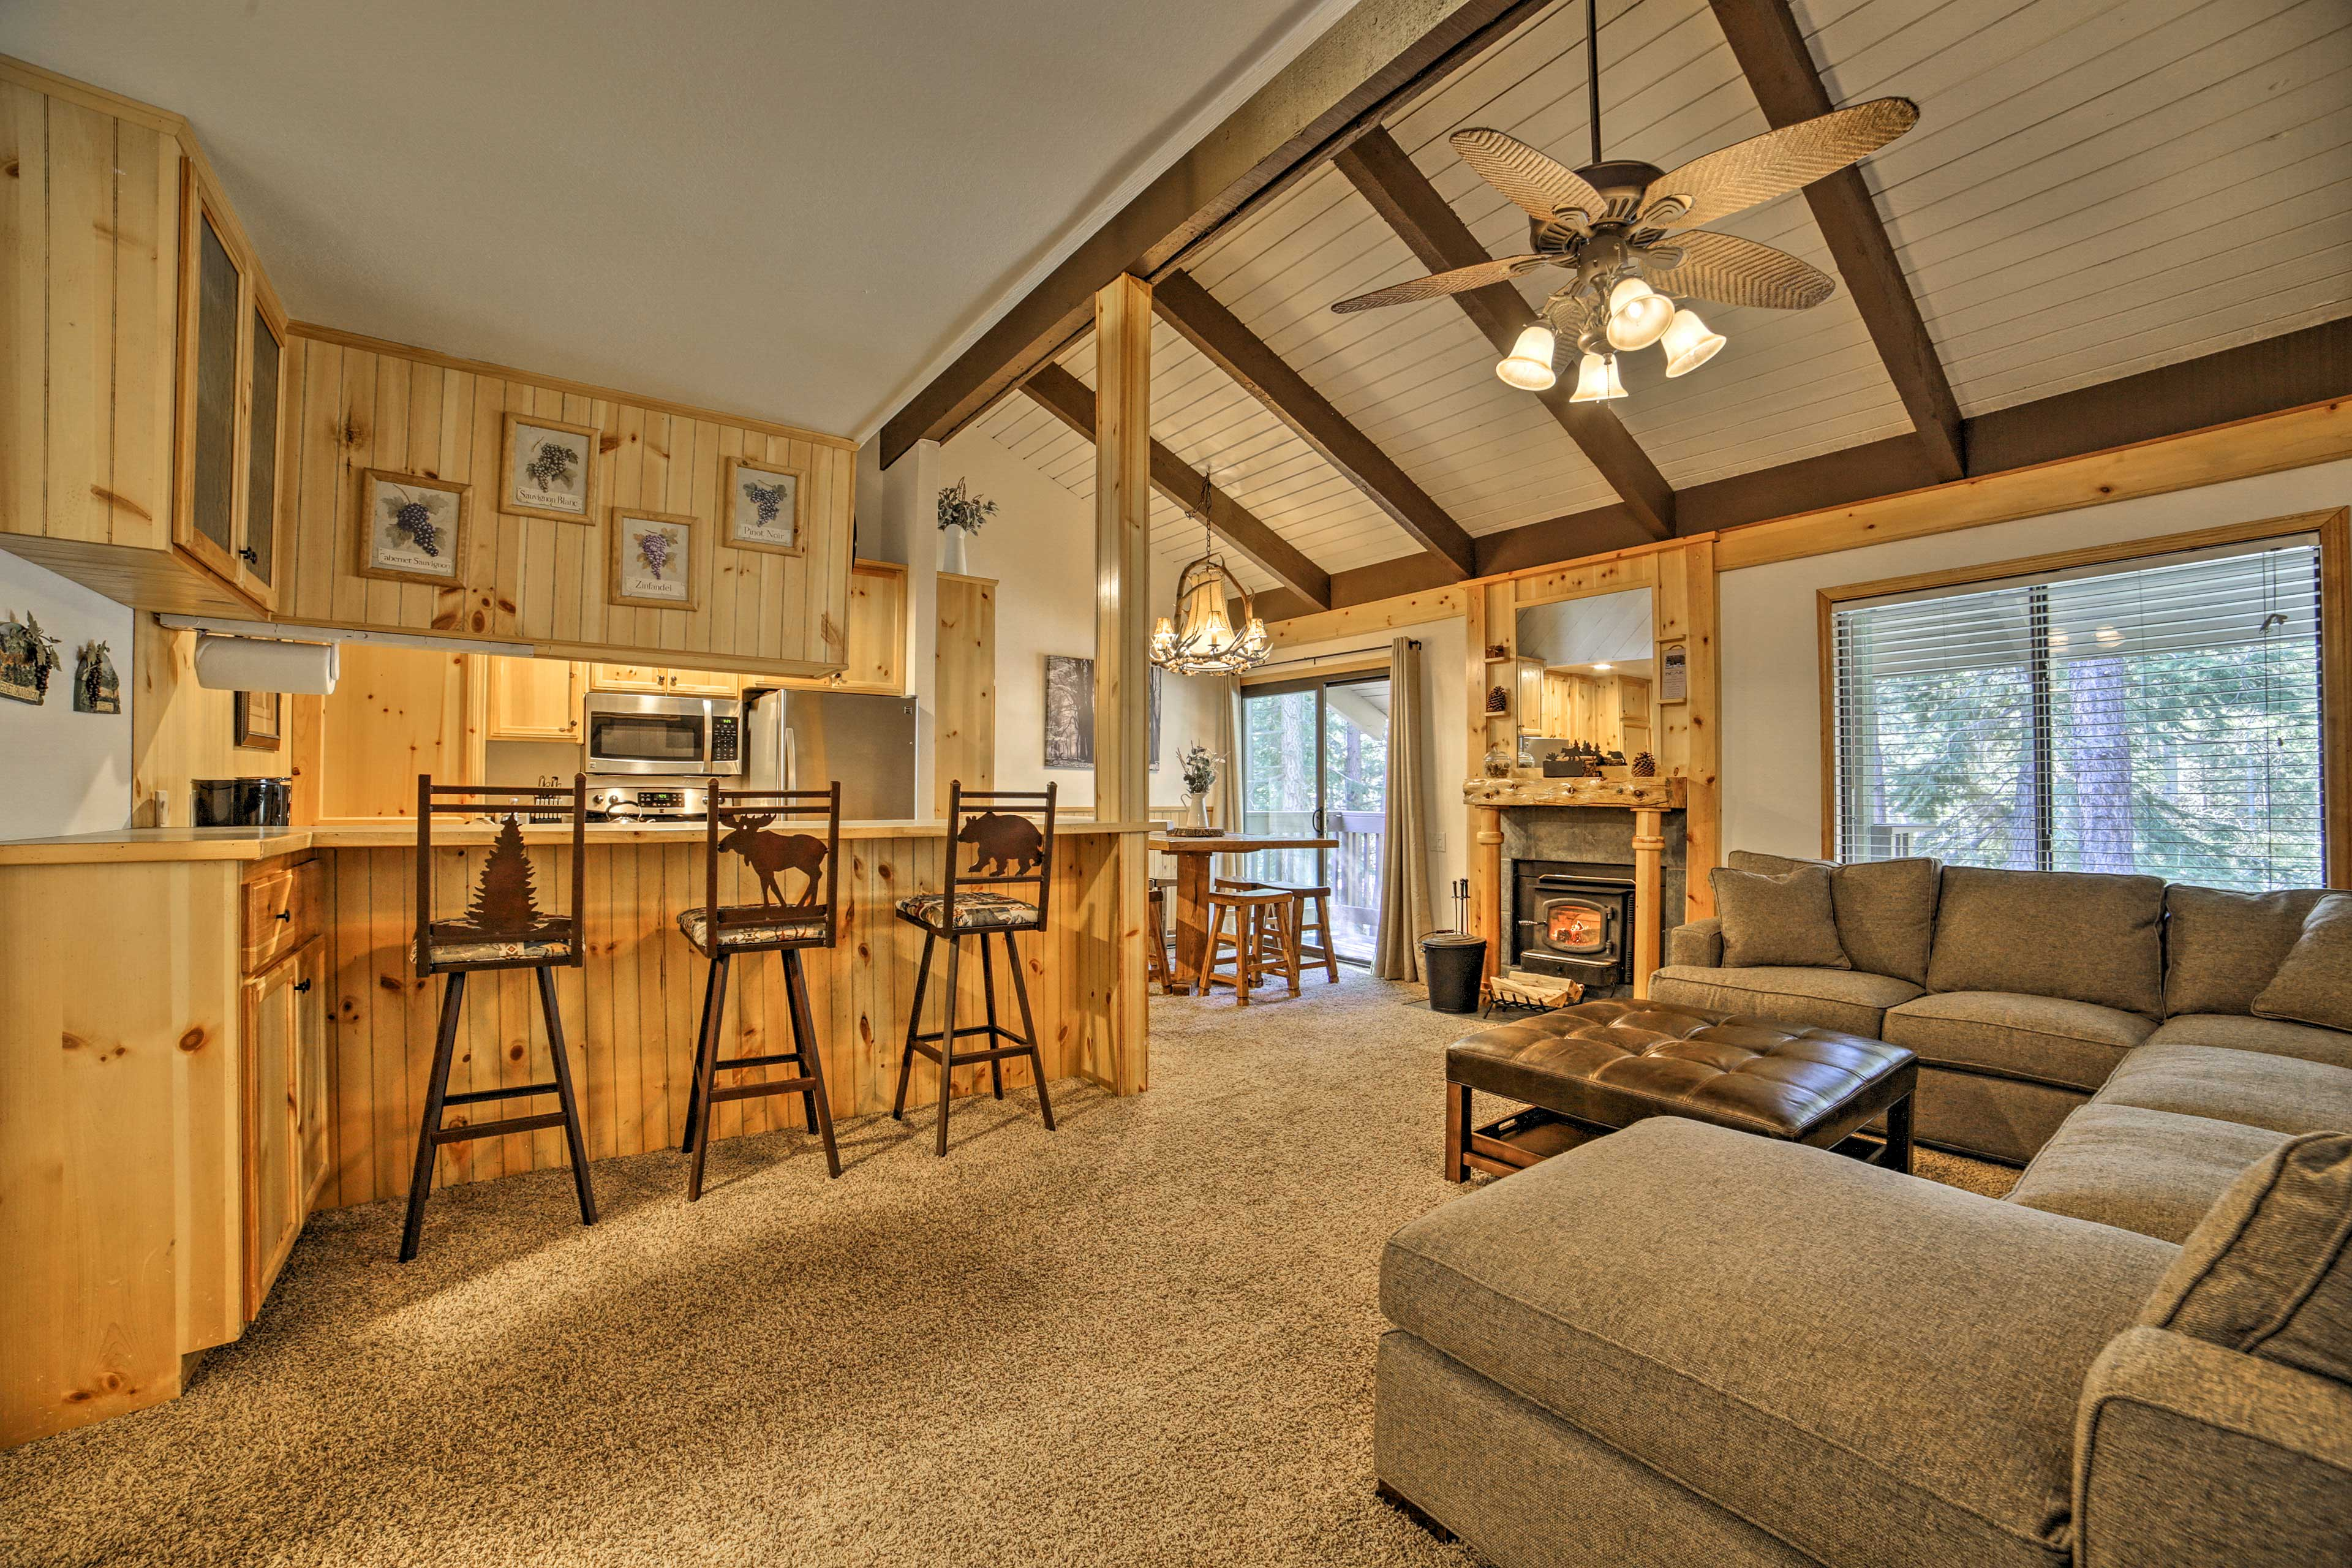 This 1-bedroom, 2-bathroom home is the perfect mountain getaway.